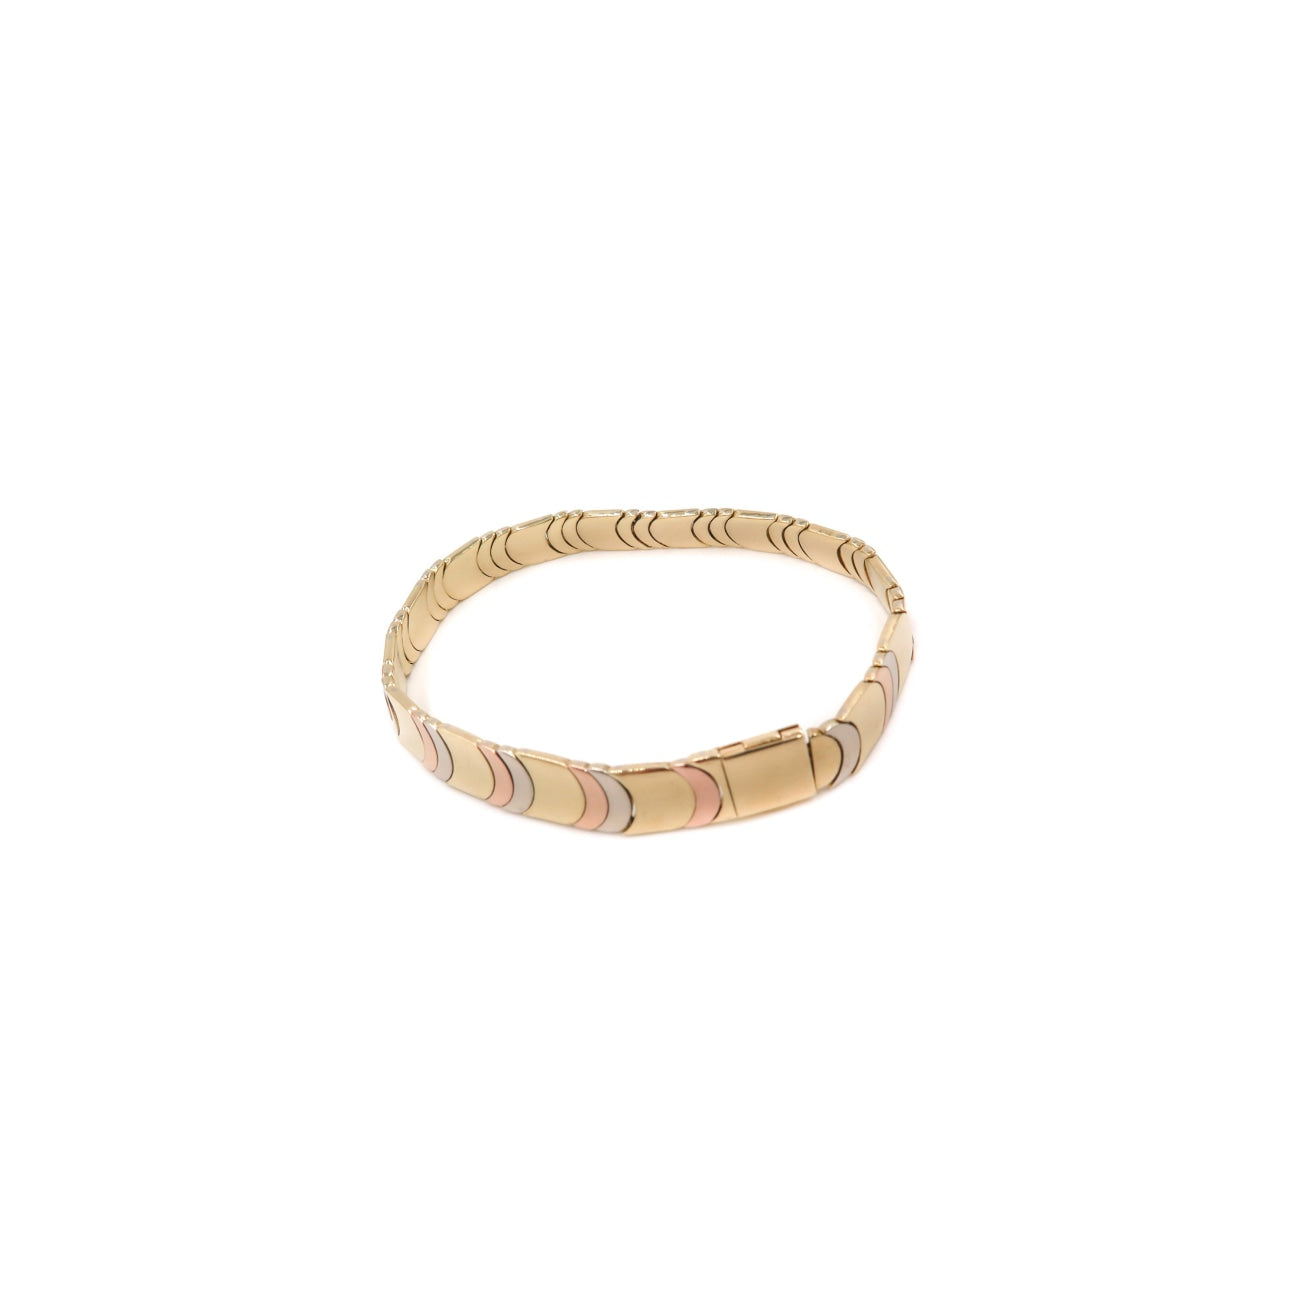 Estate Jewelry Estate Jewelry - Chimento Reversible Tricolor/Yellow Gold Bracelet | Manfredi Jewels